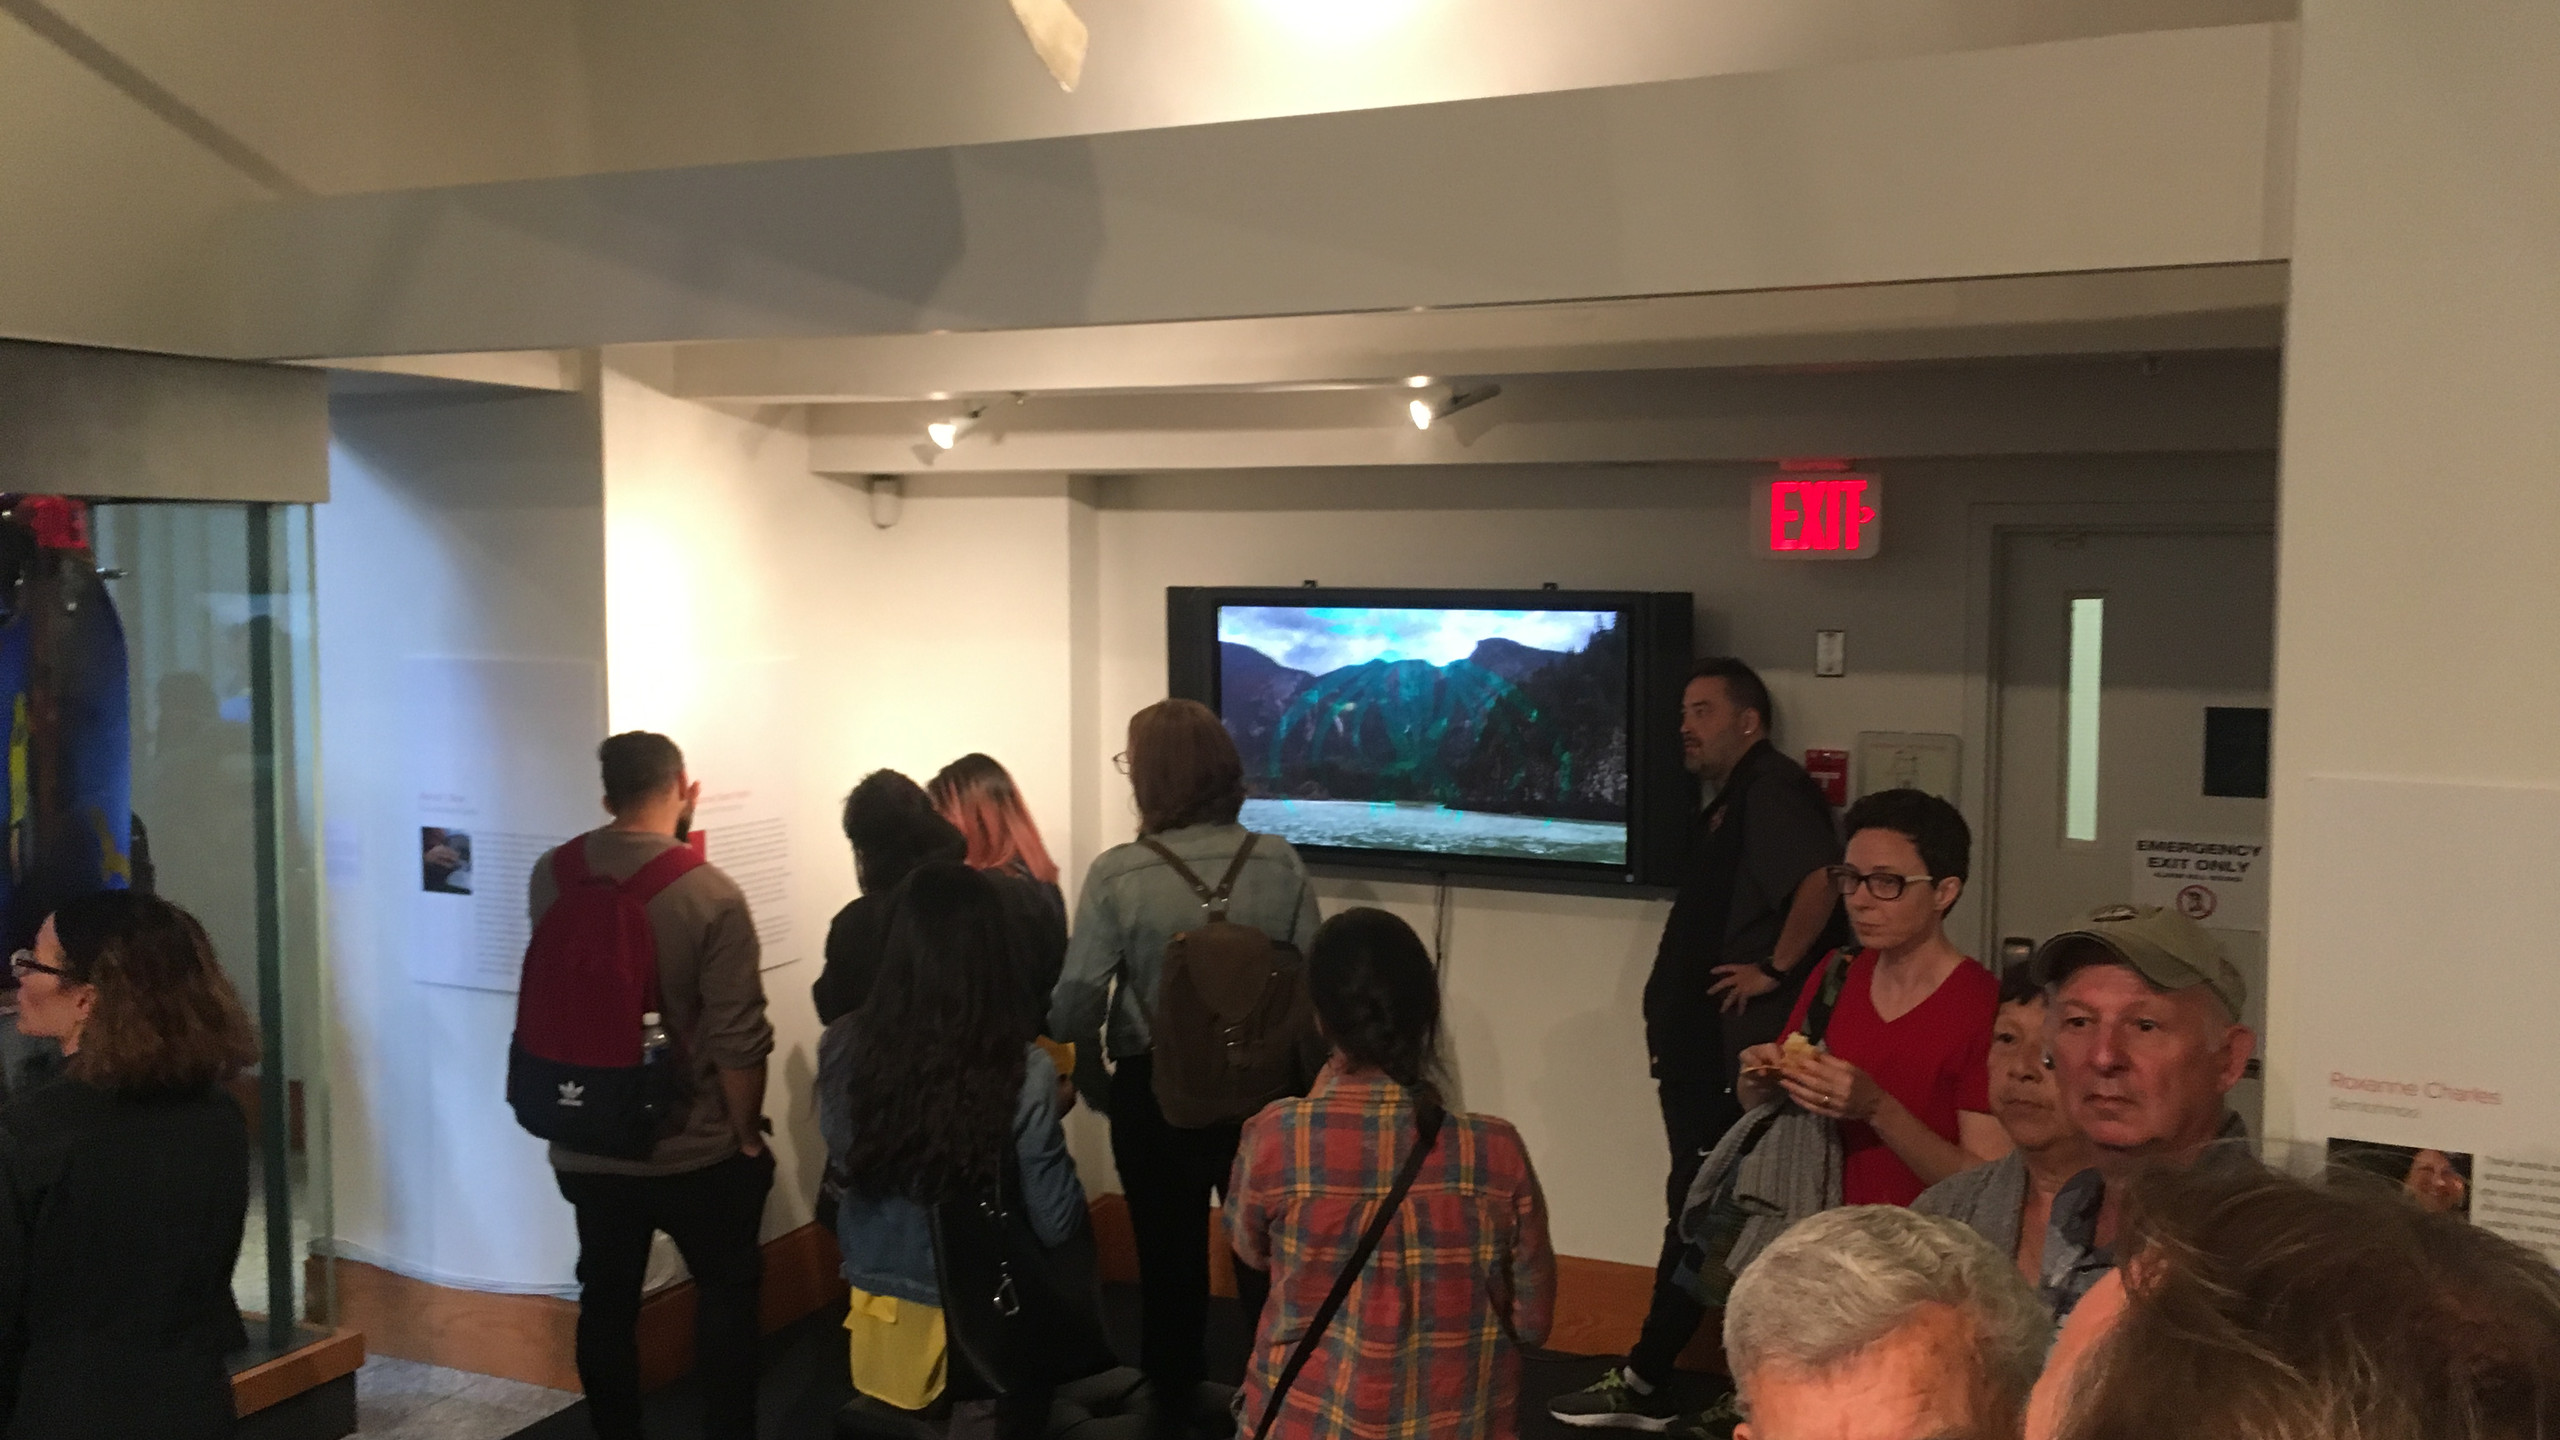 From the exhibit opening, September 12, 2017.